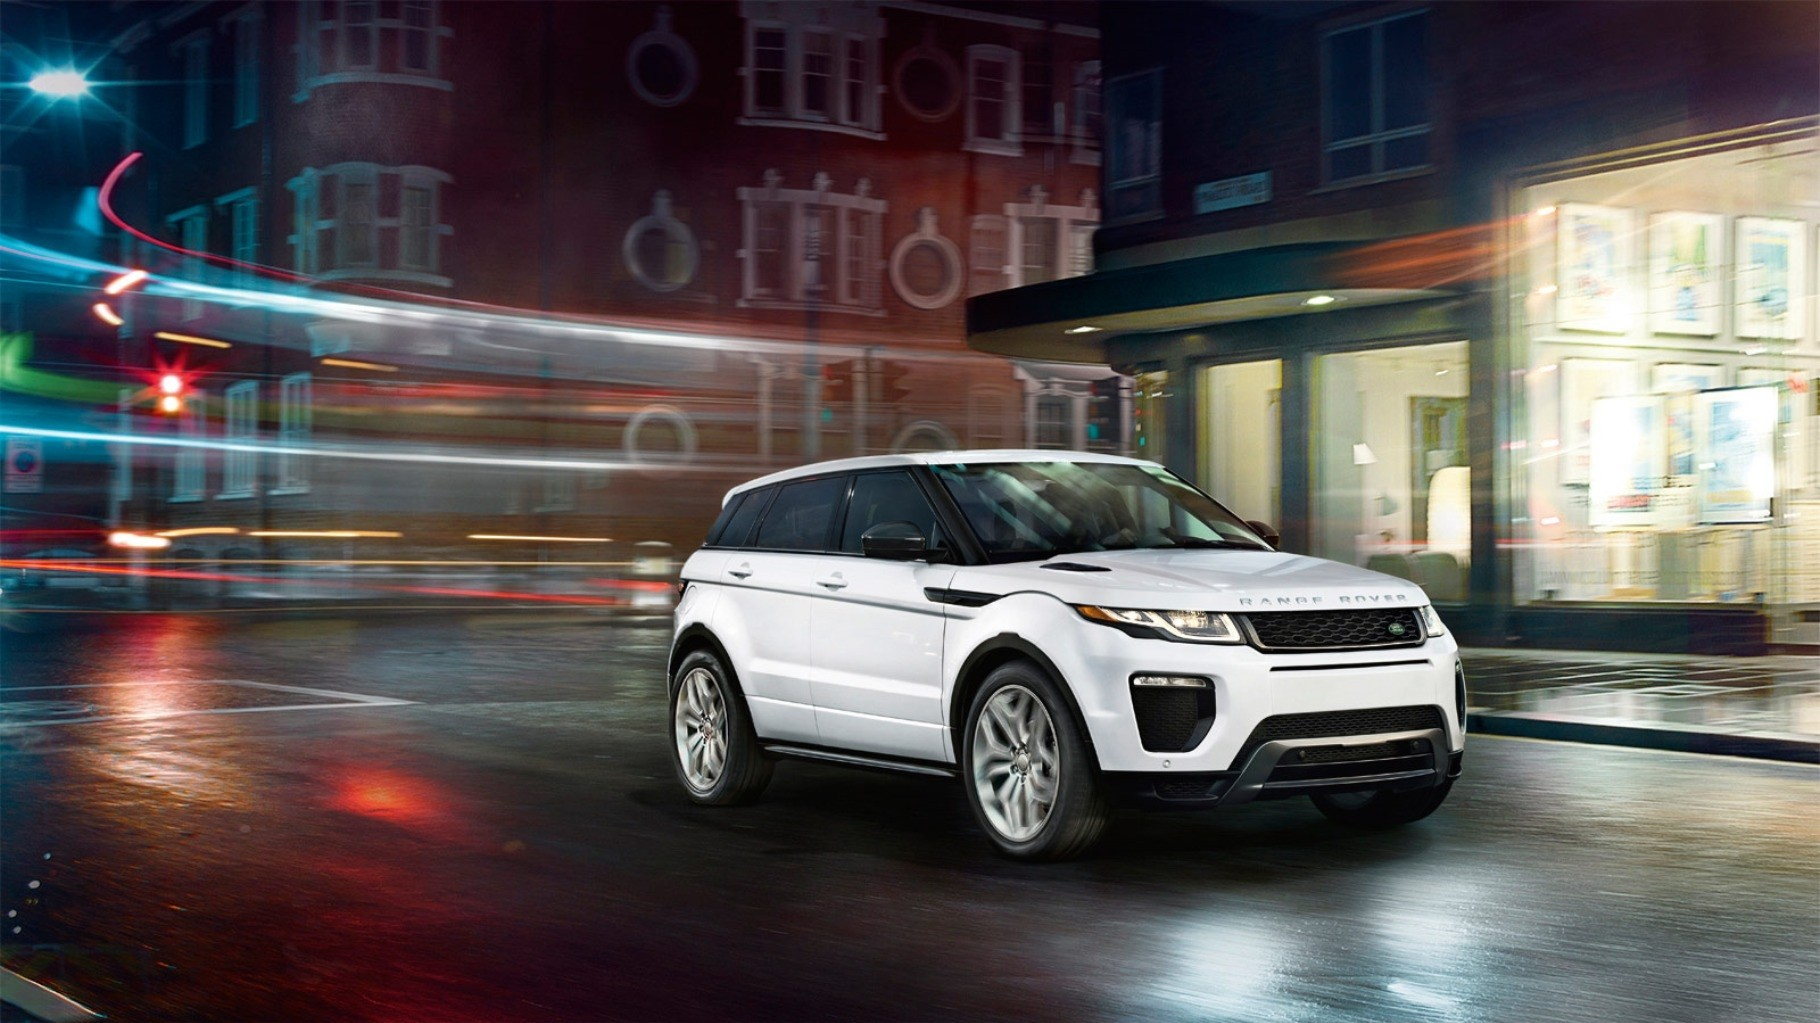 sport landrover personal for of lr use one leasing car many land uk rover deals carleasing business the best pin hopefully discovery deal